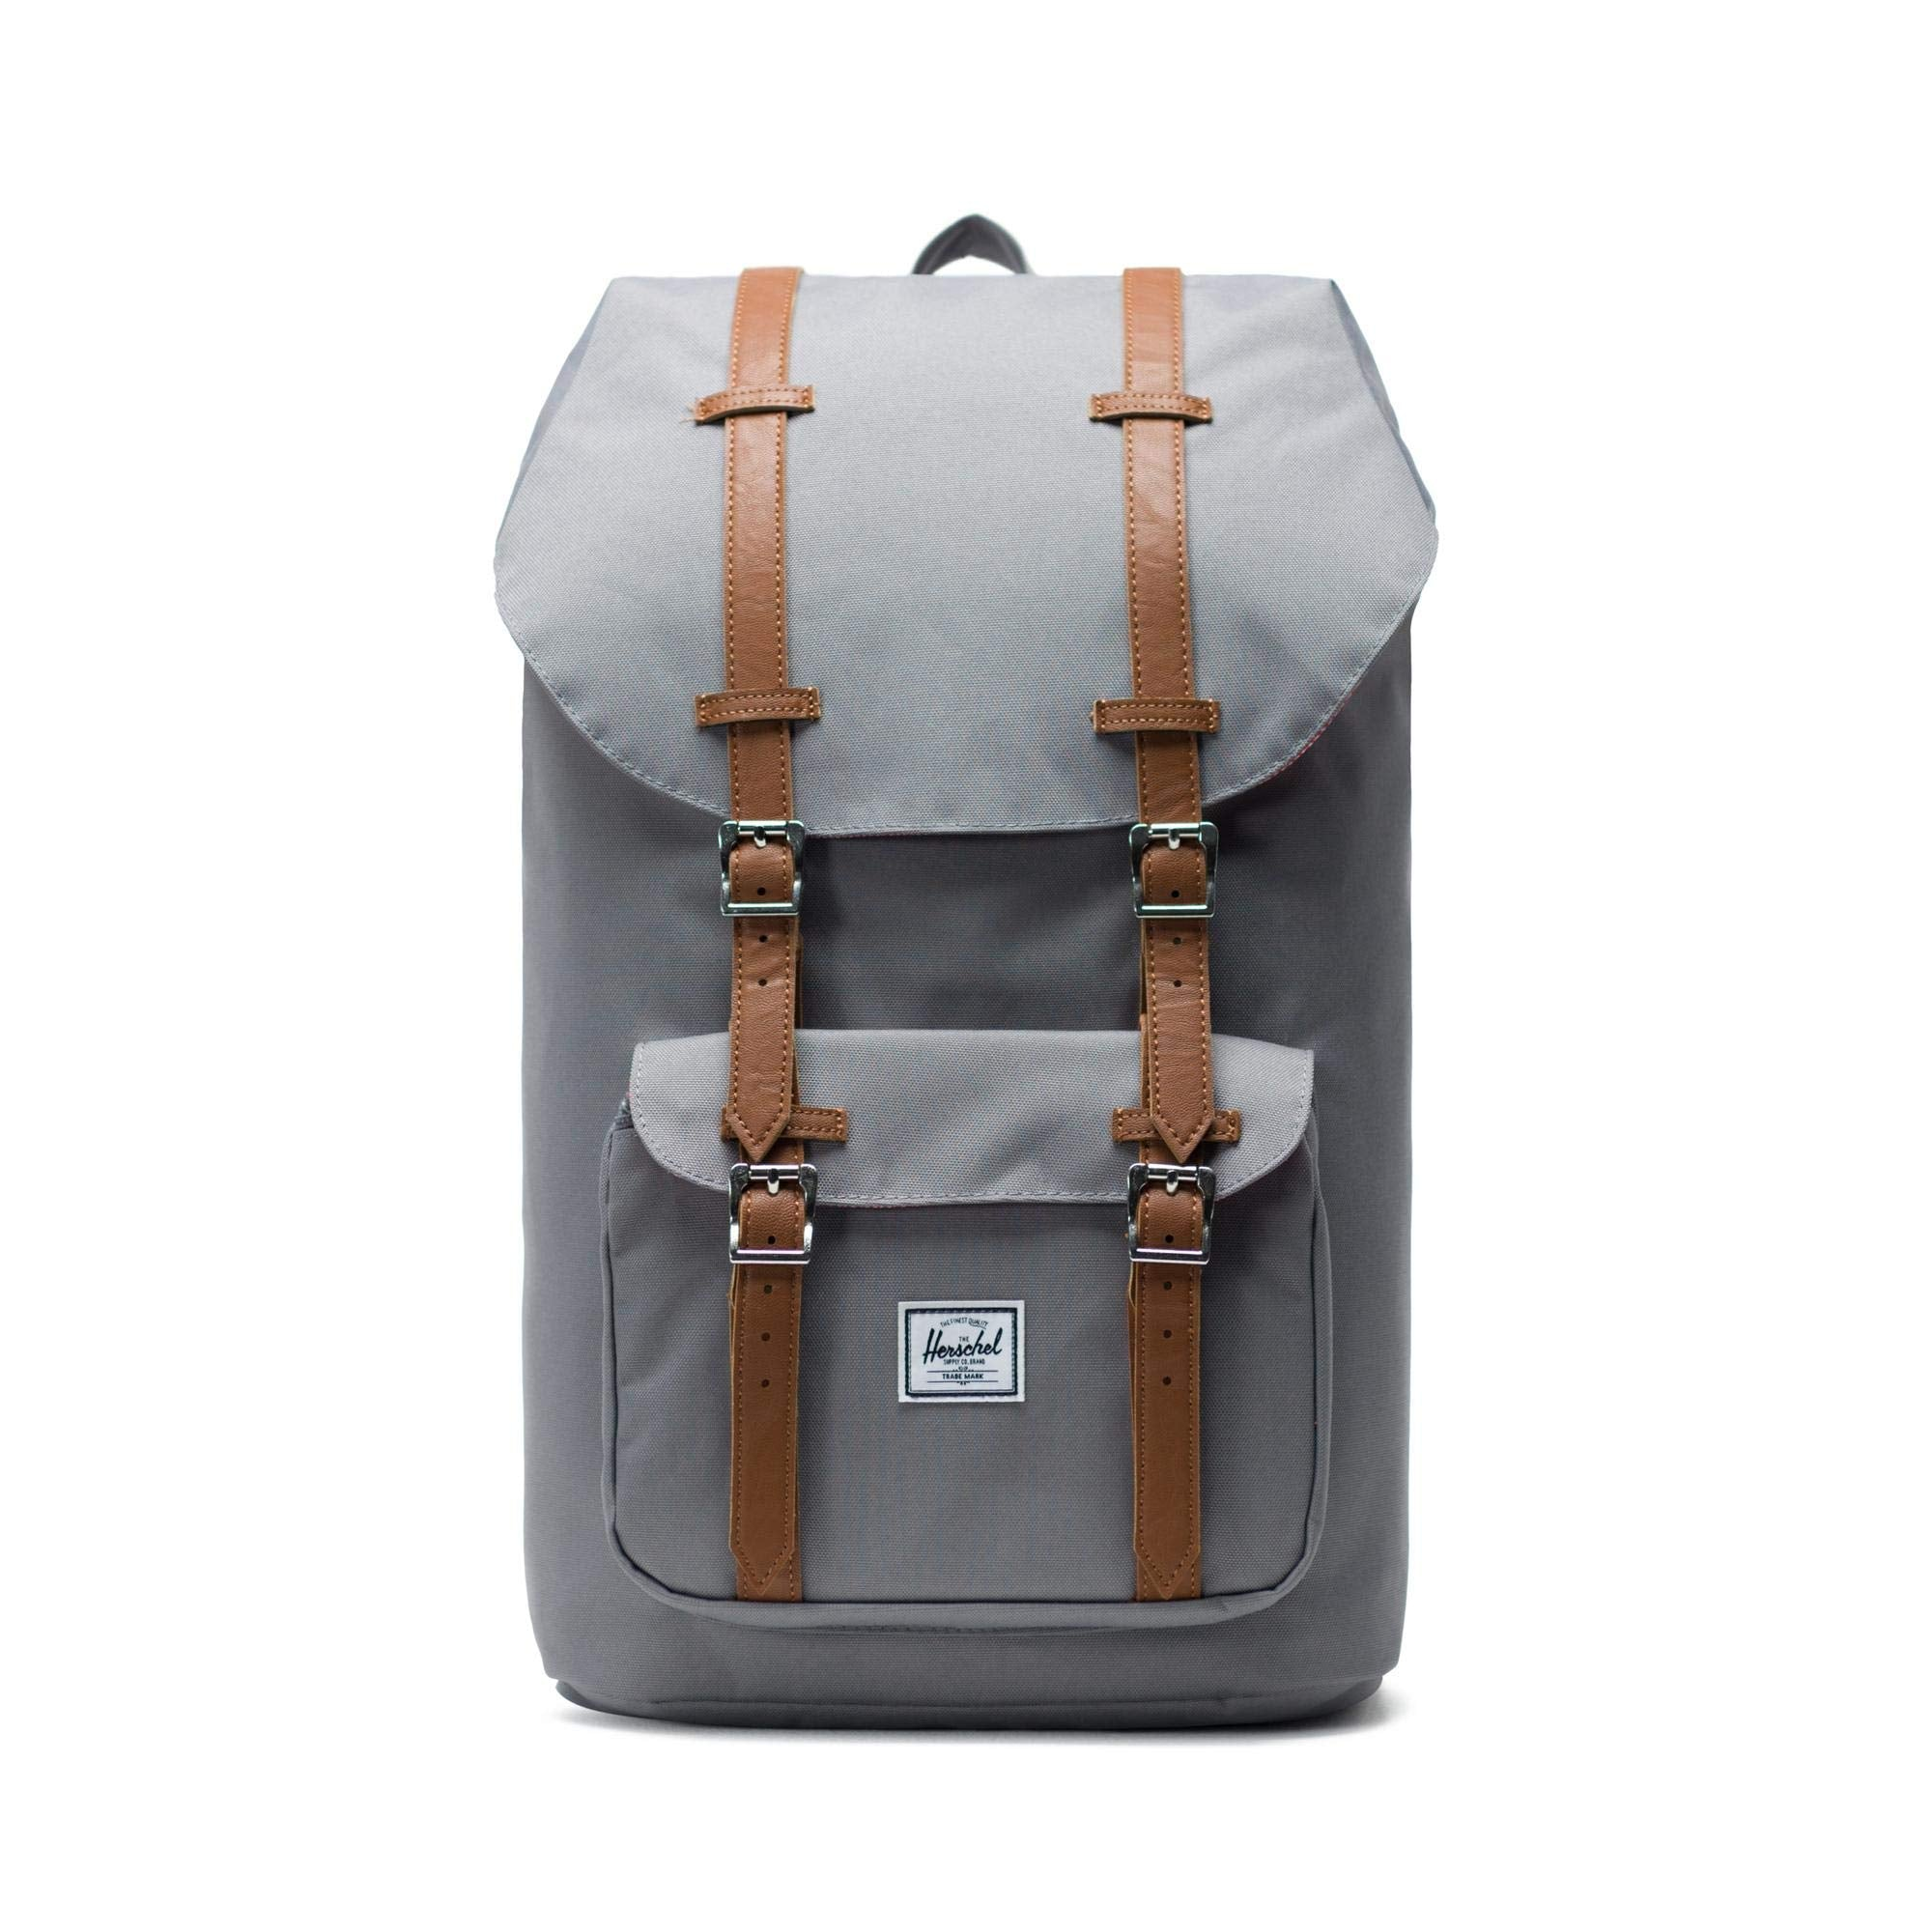 Herschel Little America Backpack-Grey, Tan Synthetic Leather - yrGear